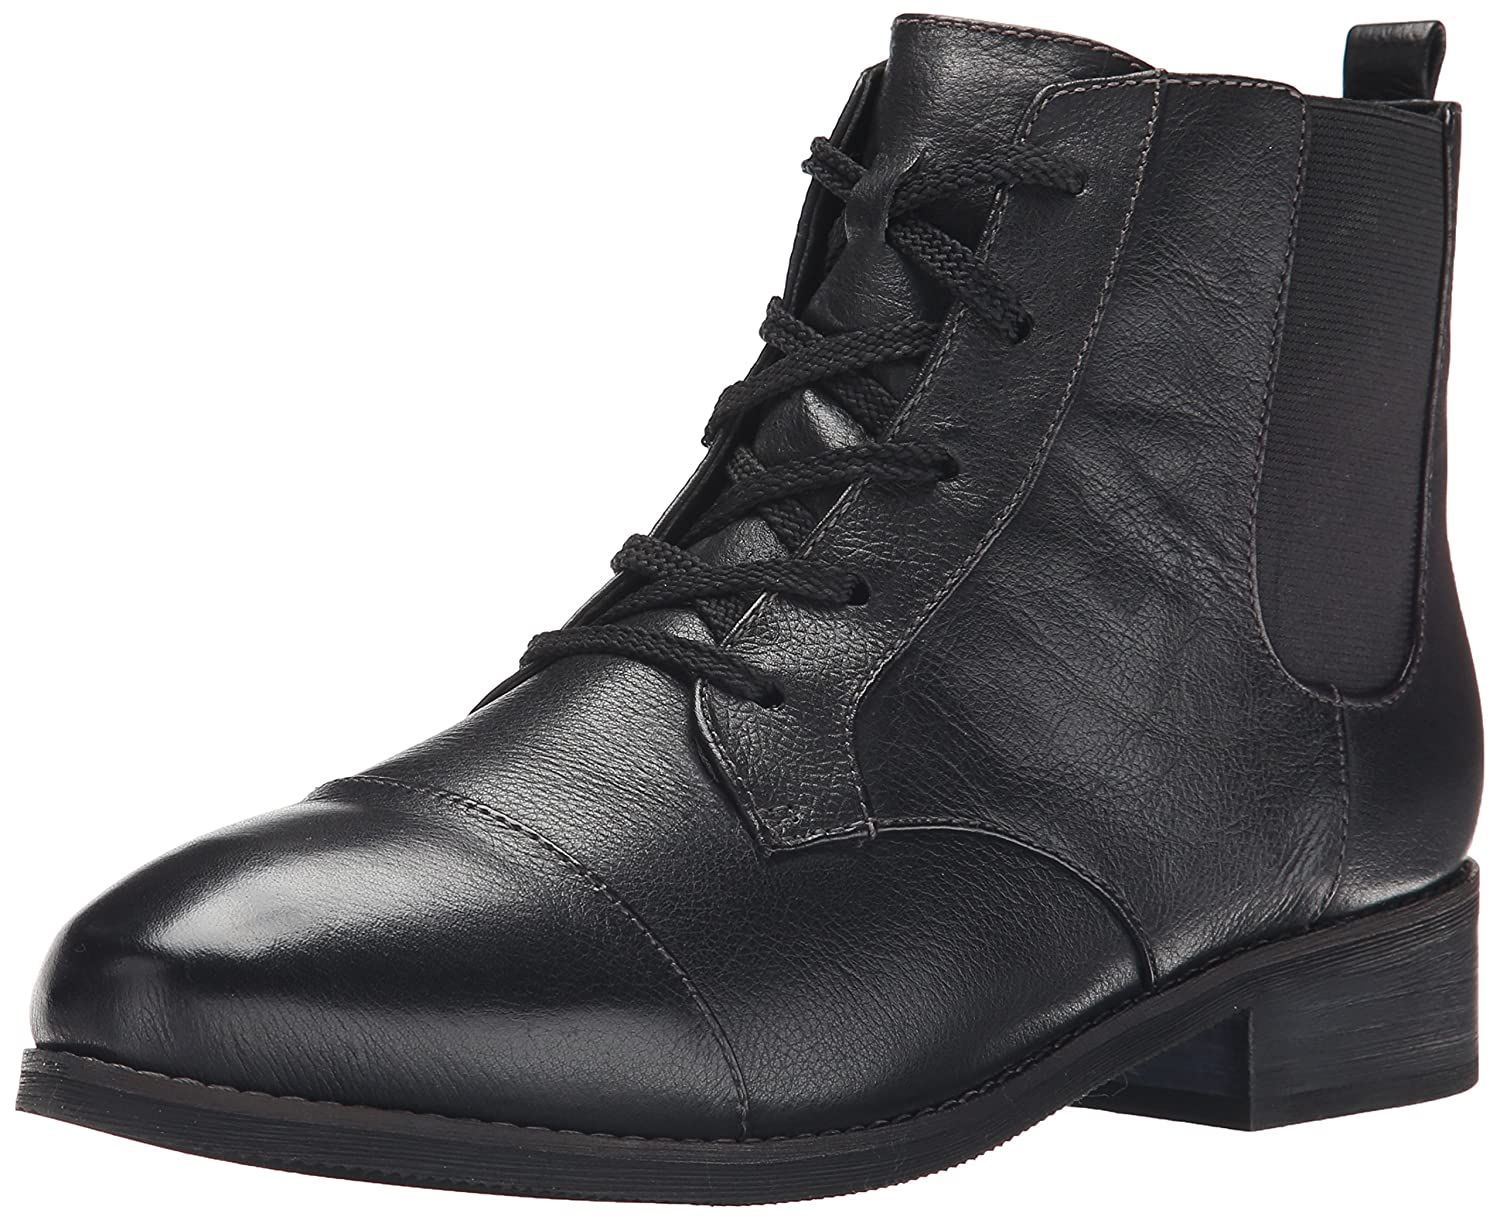 SoftWalk Women's Miller Boot B00S038TZM 8 B(M) US|Black